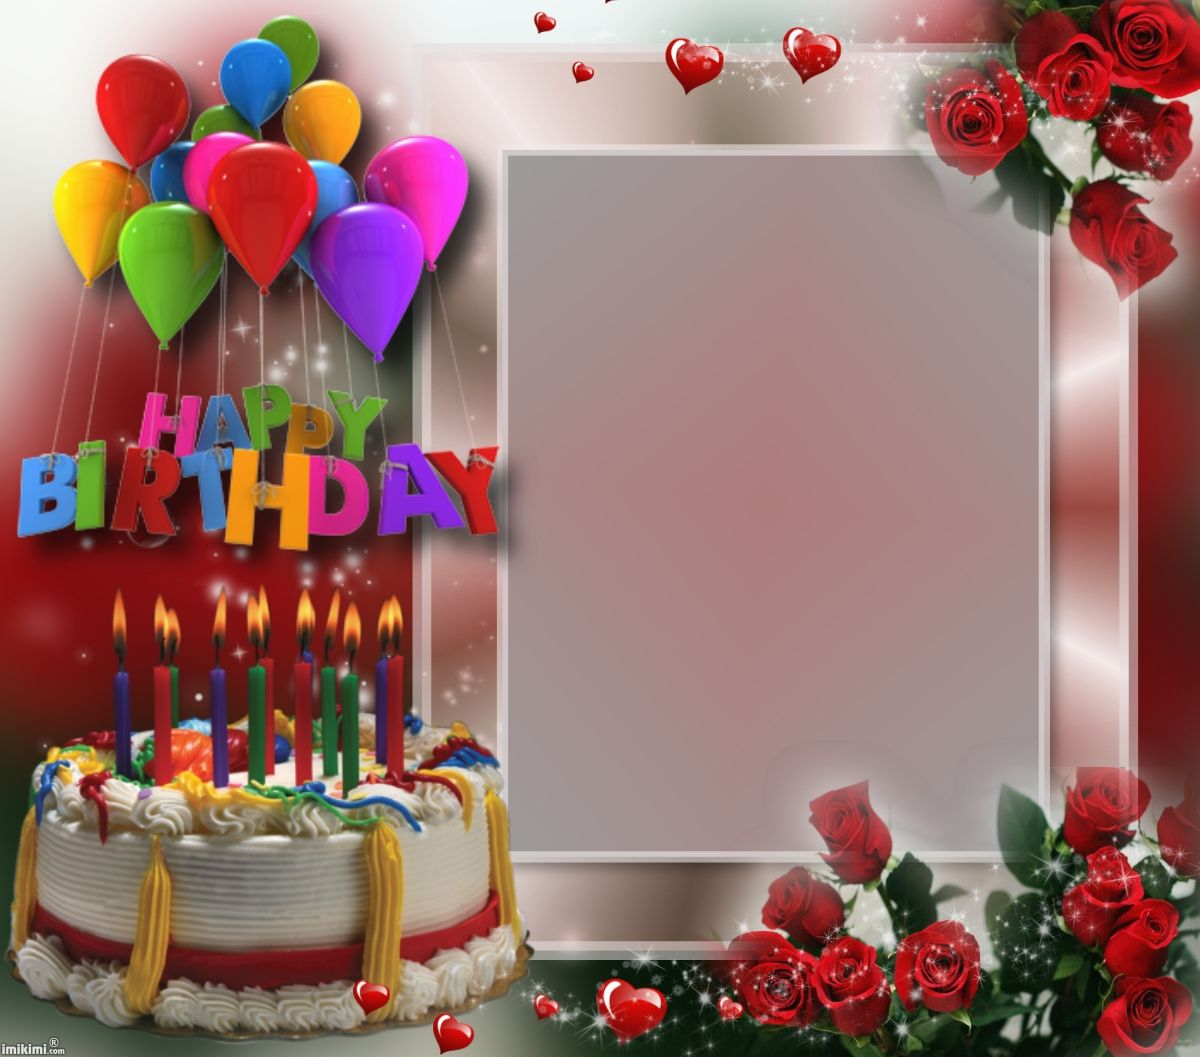 Photo editing services happy birthday image